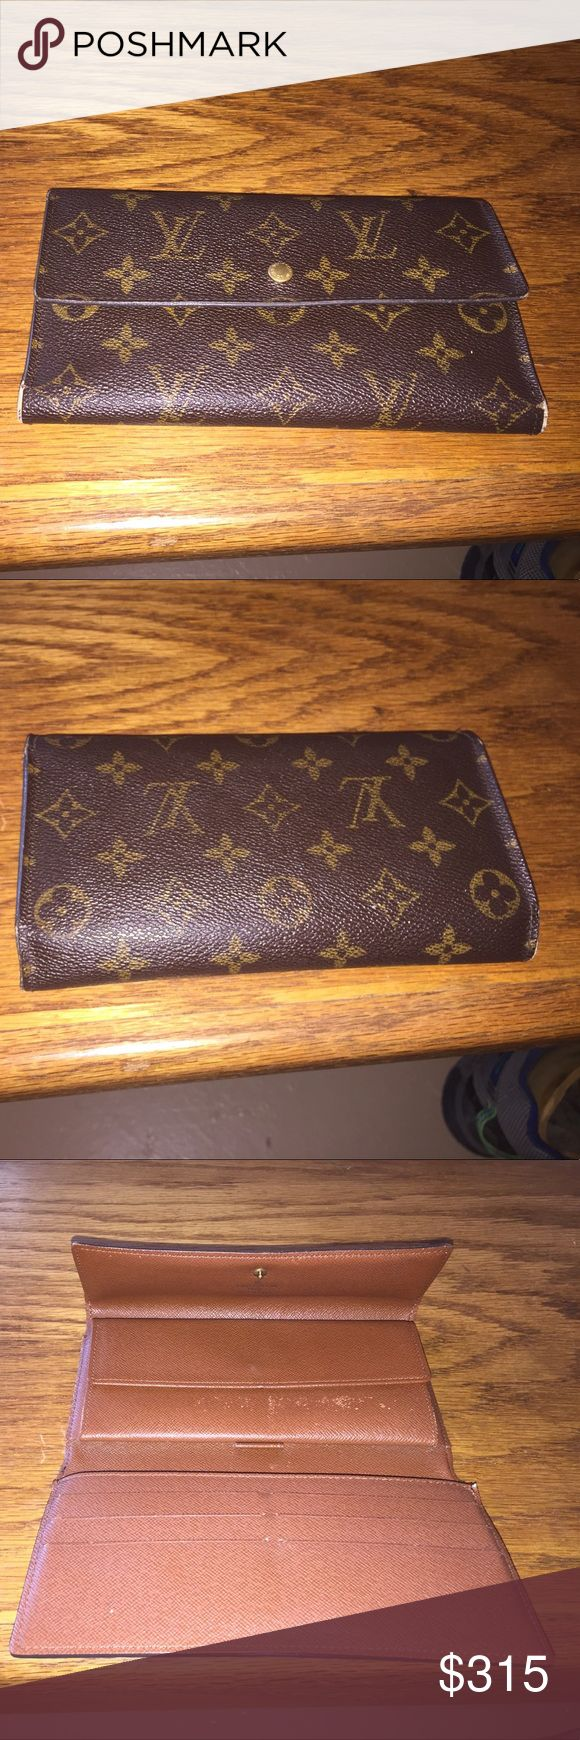 Authentic Louis Vuitton wallet Price dropped ♨️😃😃Authentic Louis Vuitton long Wallet sighns of wear throughout minor tears at 2 corners overall good condition 2 snap compartments credit cards checkbook and cash compartments Louis Vuitton Bags Wallets